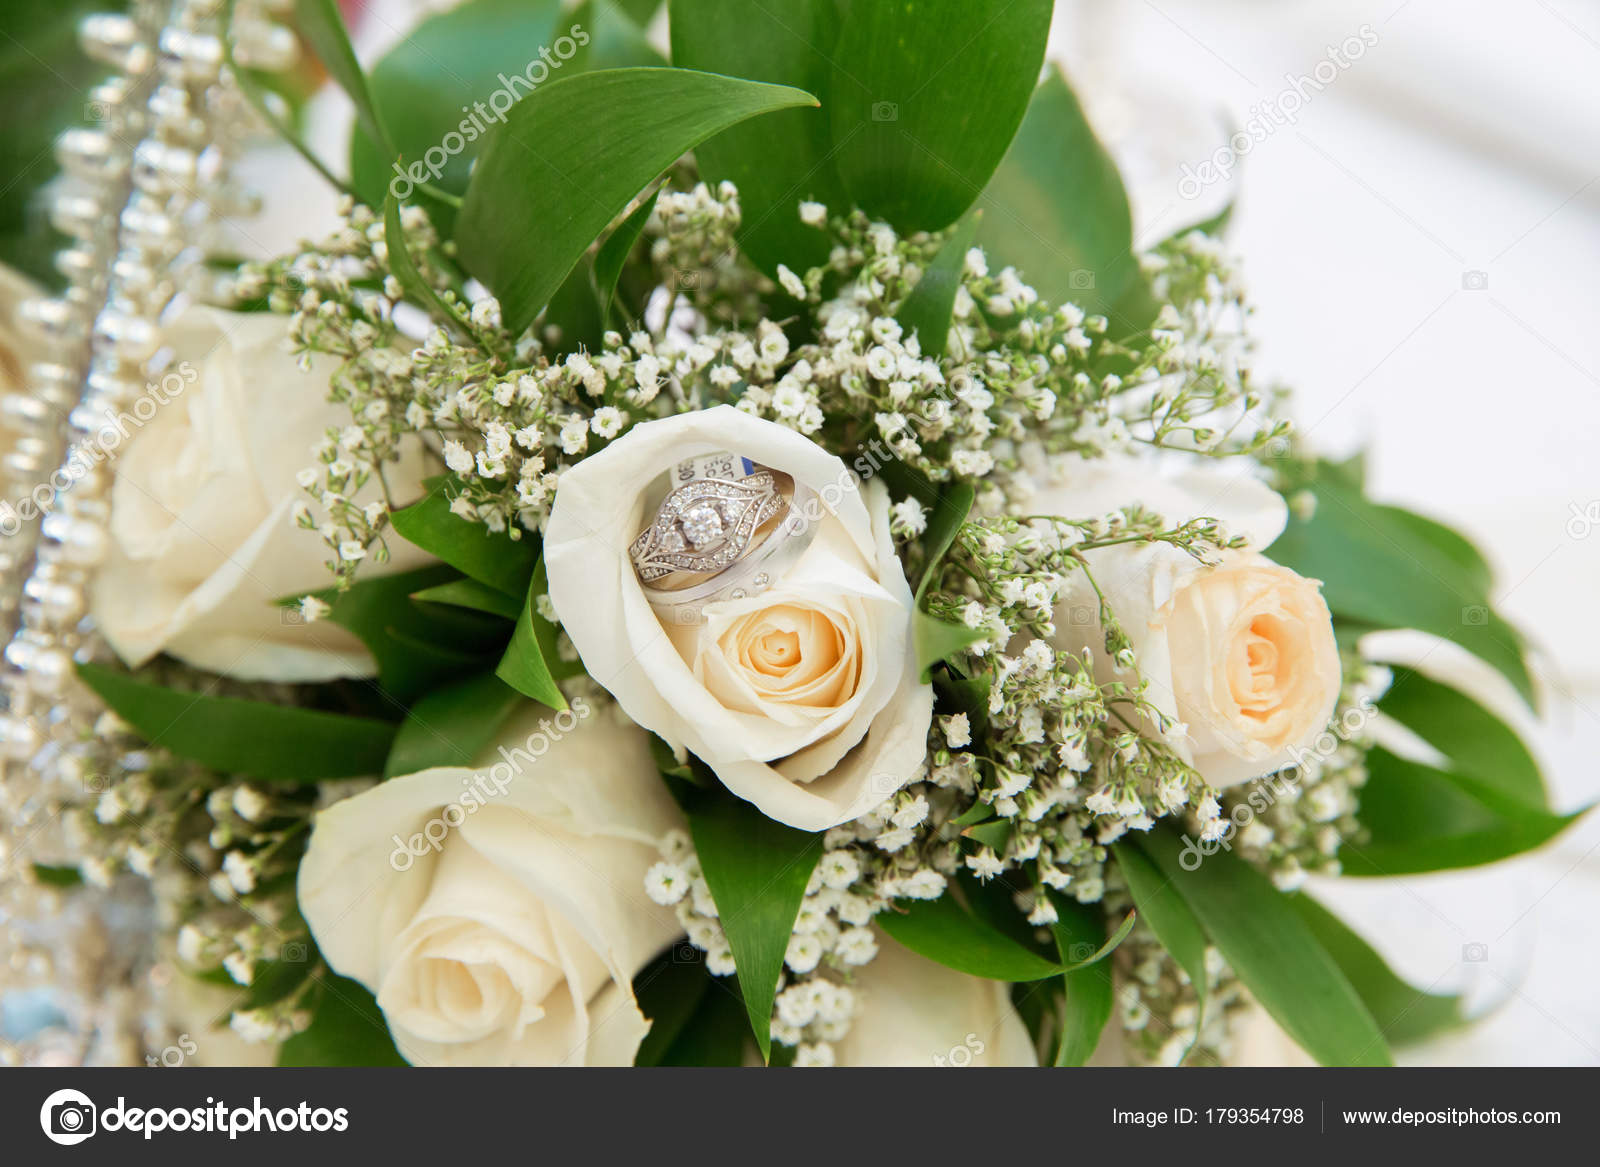 Beautiful white wedding bouquets in basket bouquet flowers rose beautiful white wedding bouquets in basket backgraound bouquet flowers rose wedding rings photo by fotoqrafil izmirmasajfo